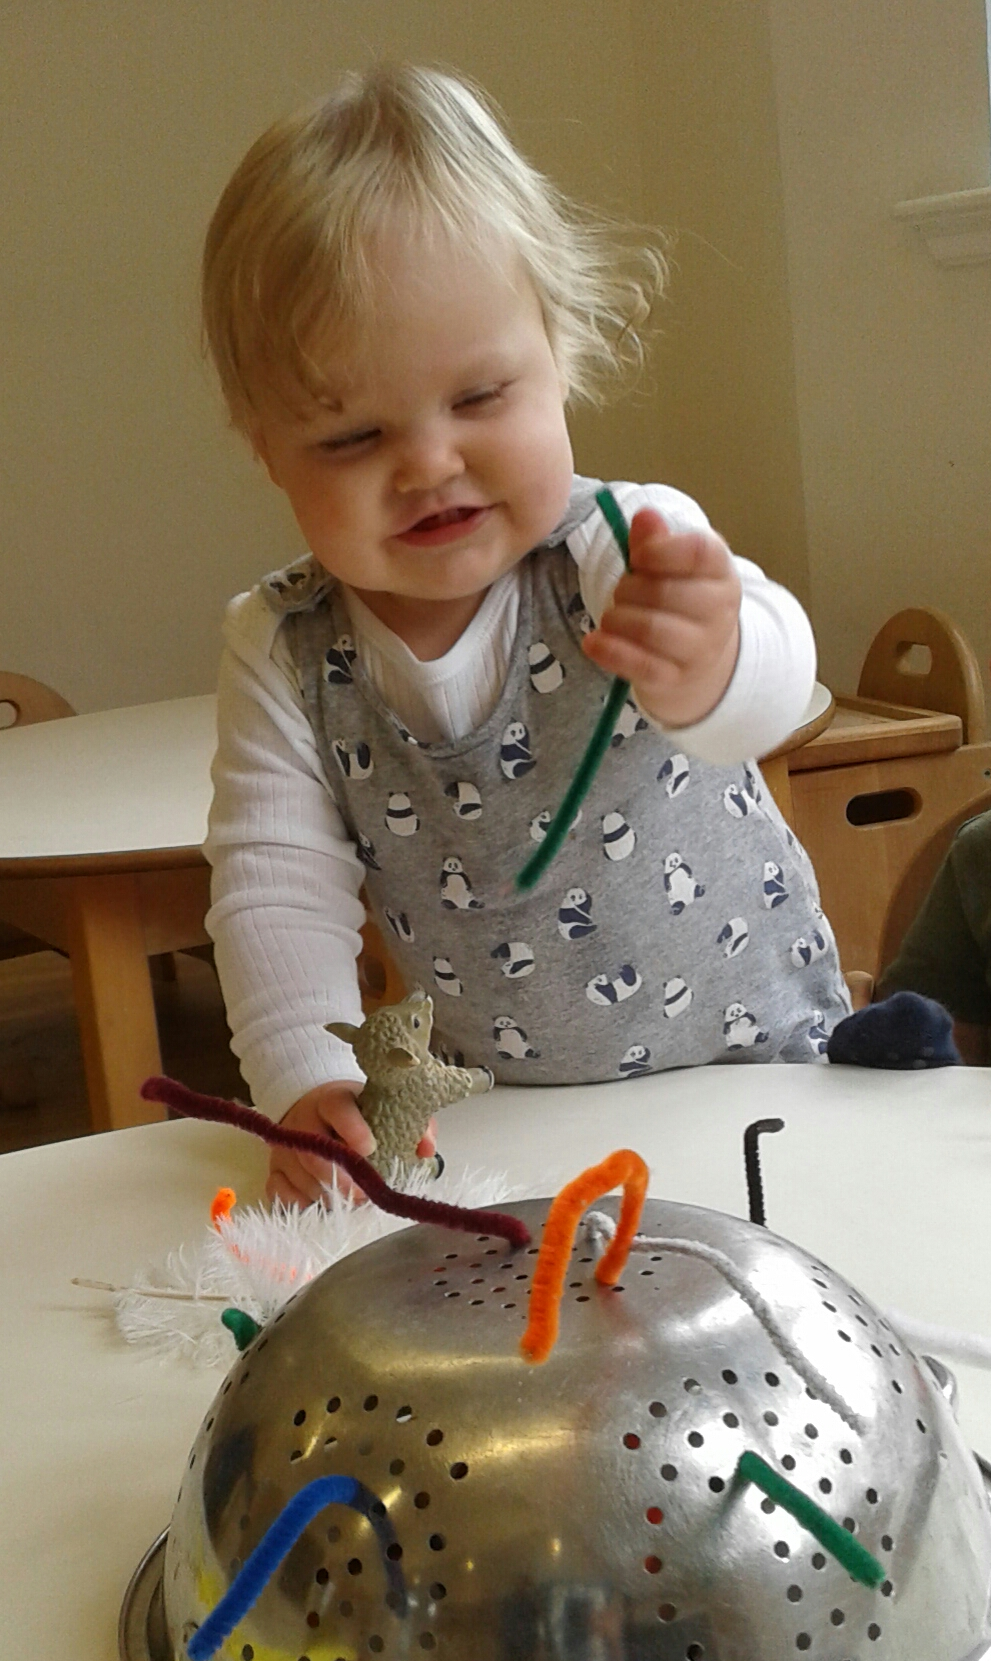 The babies have been very busy getting messy and developing their fine motor skills